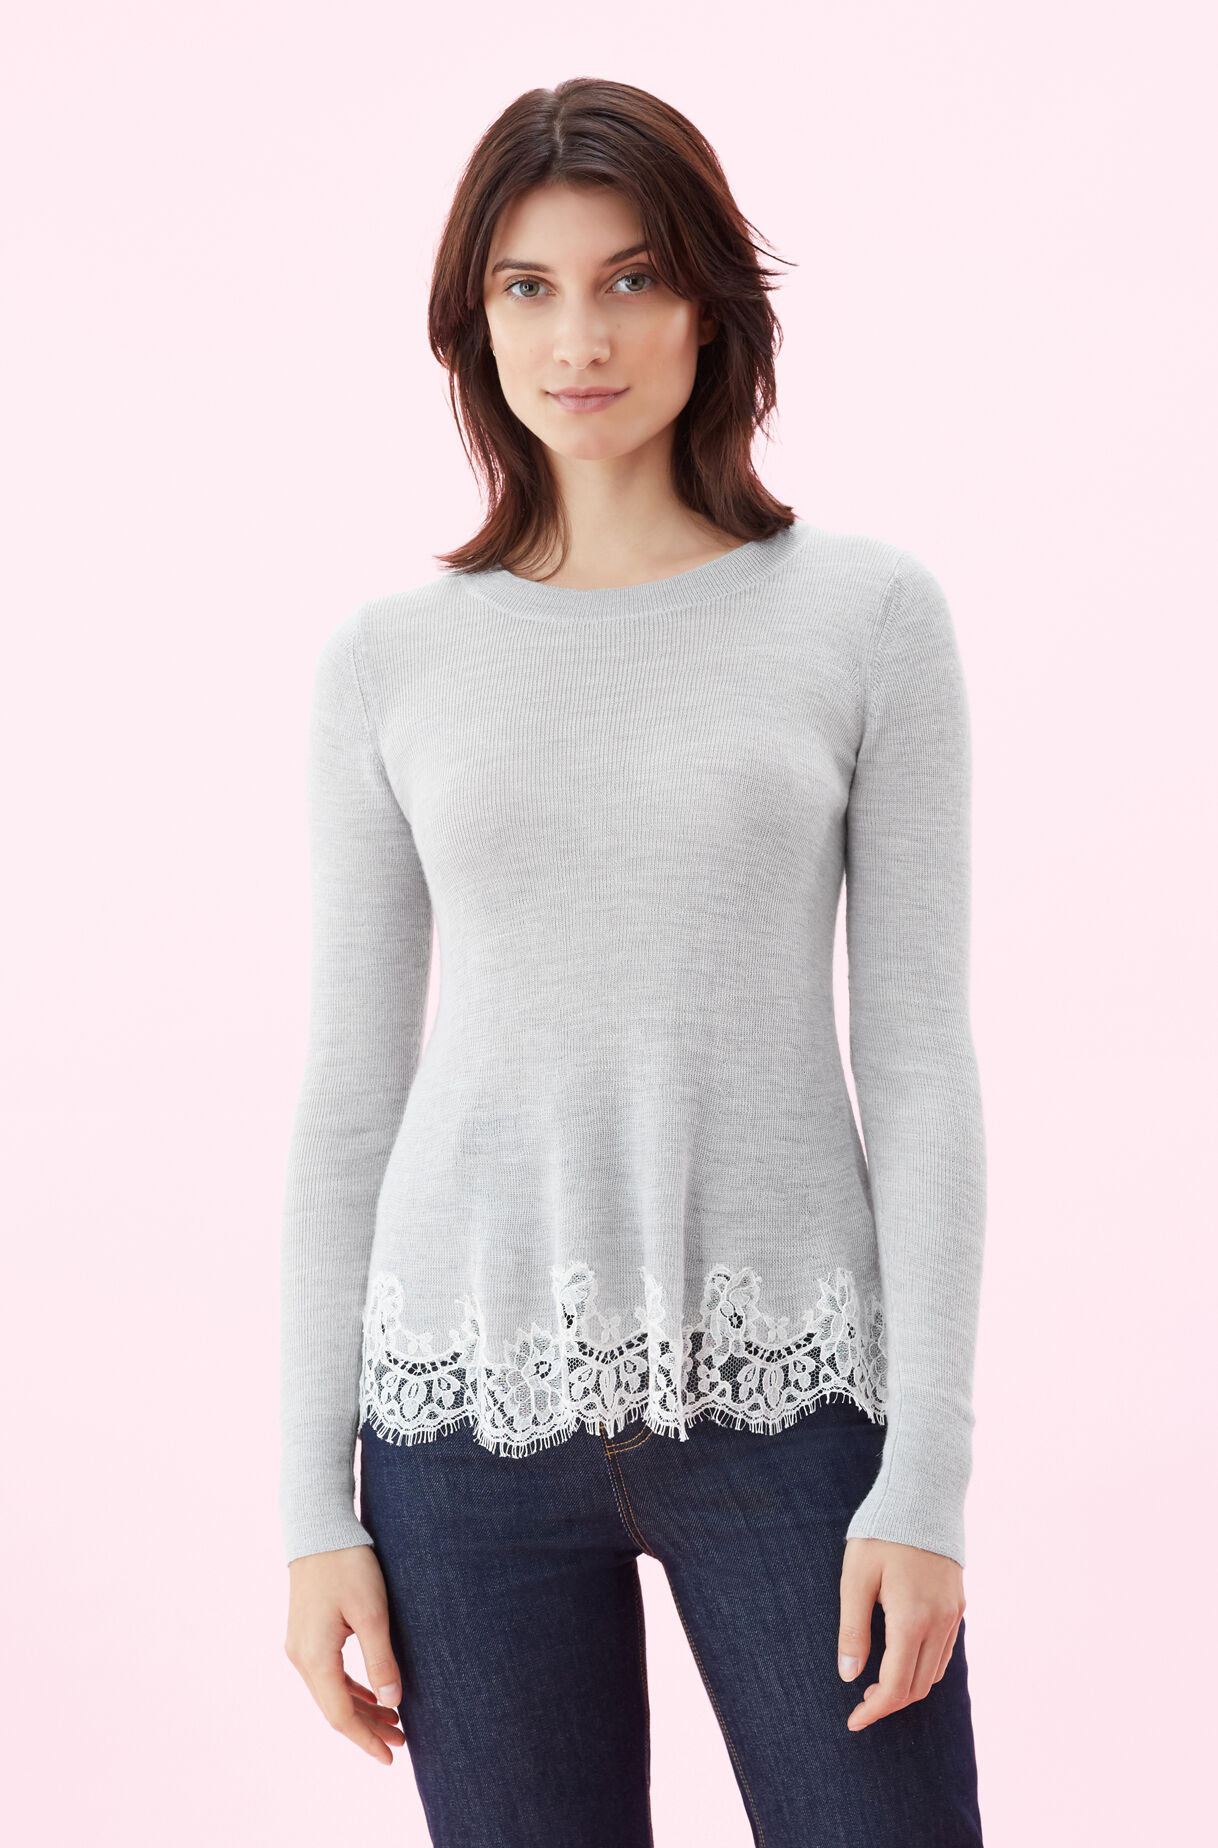 Lace Combo Pullover, , large